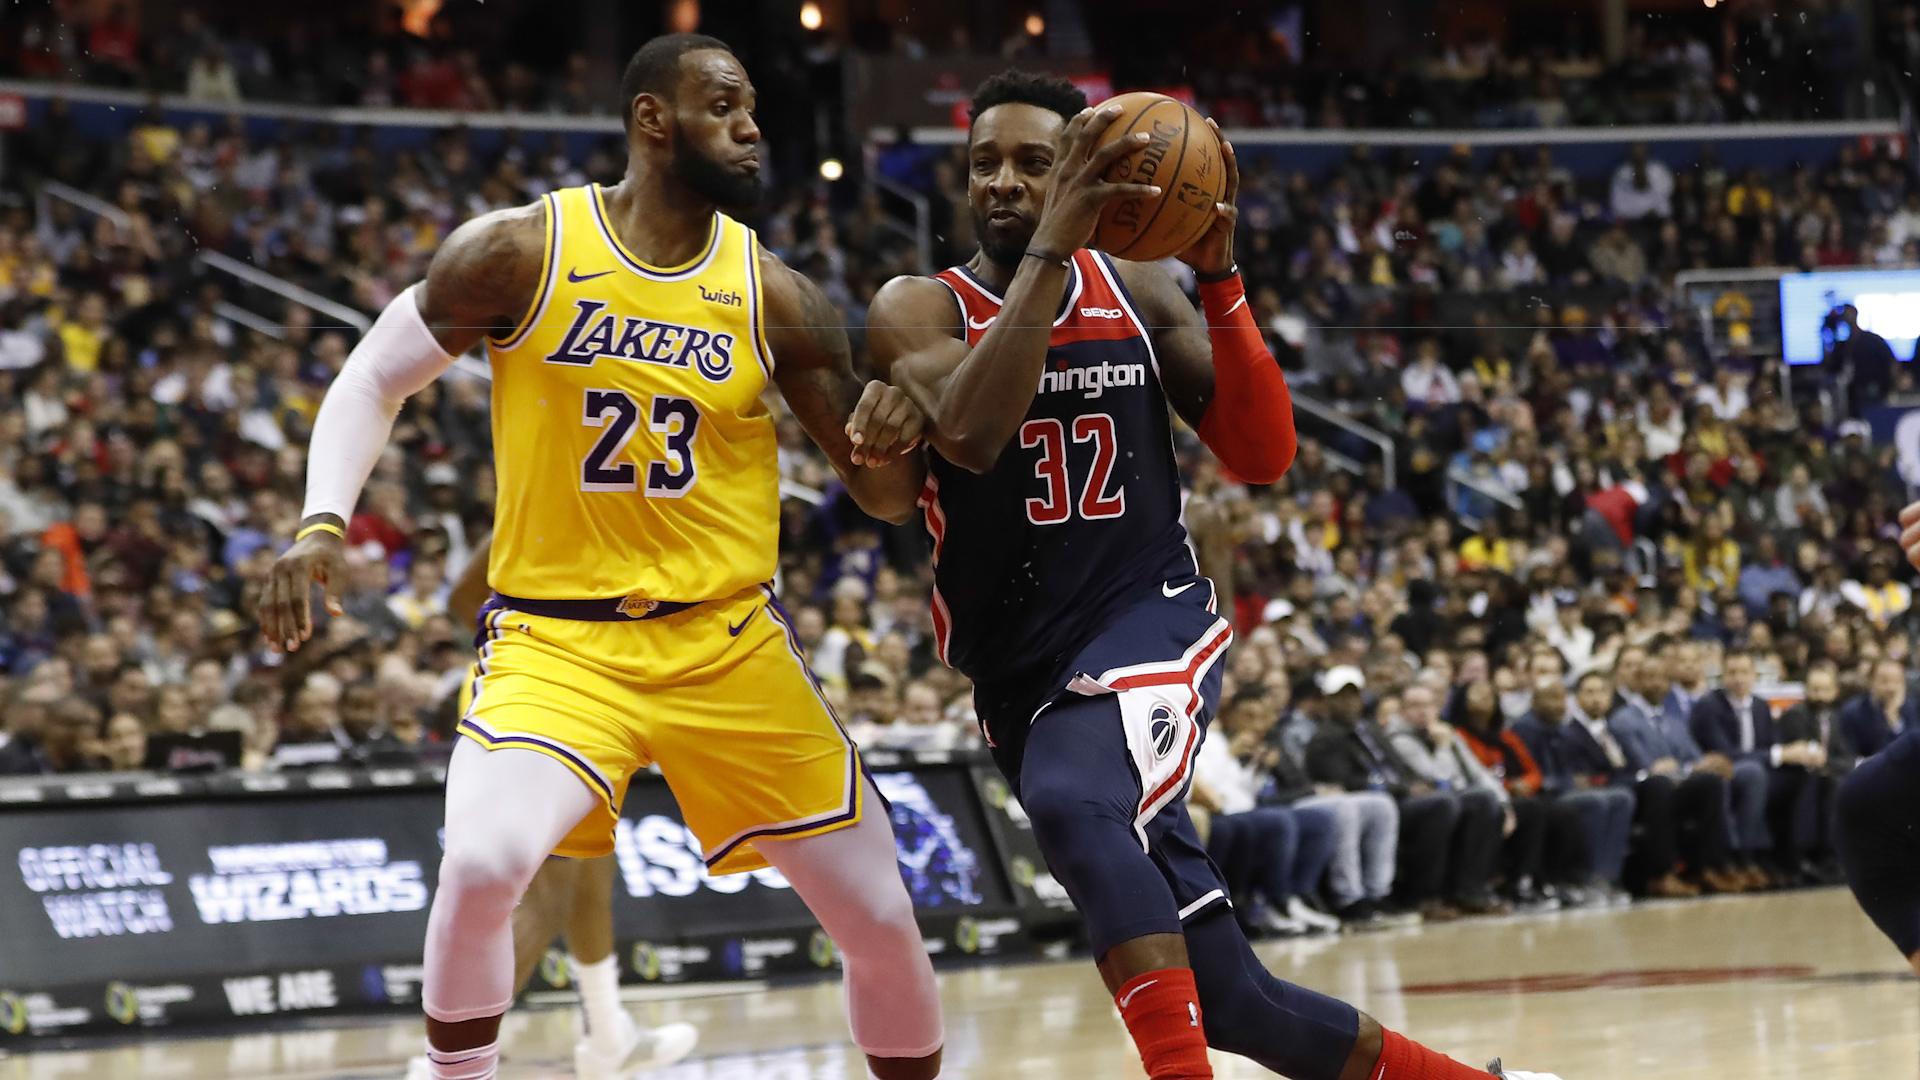 No Cali love: why Wizards MUST beat Lakers Tuesday